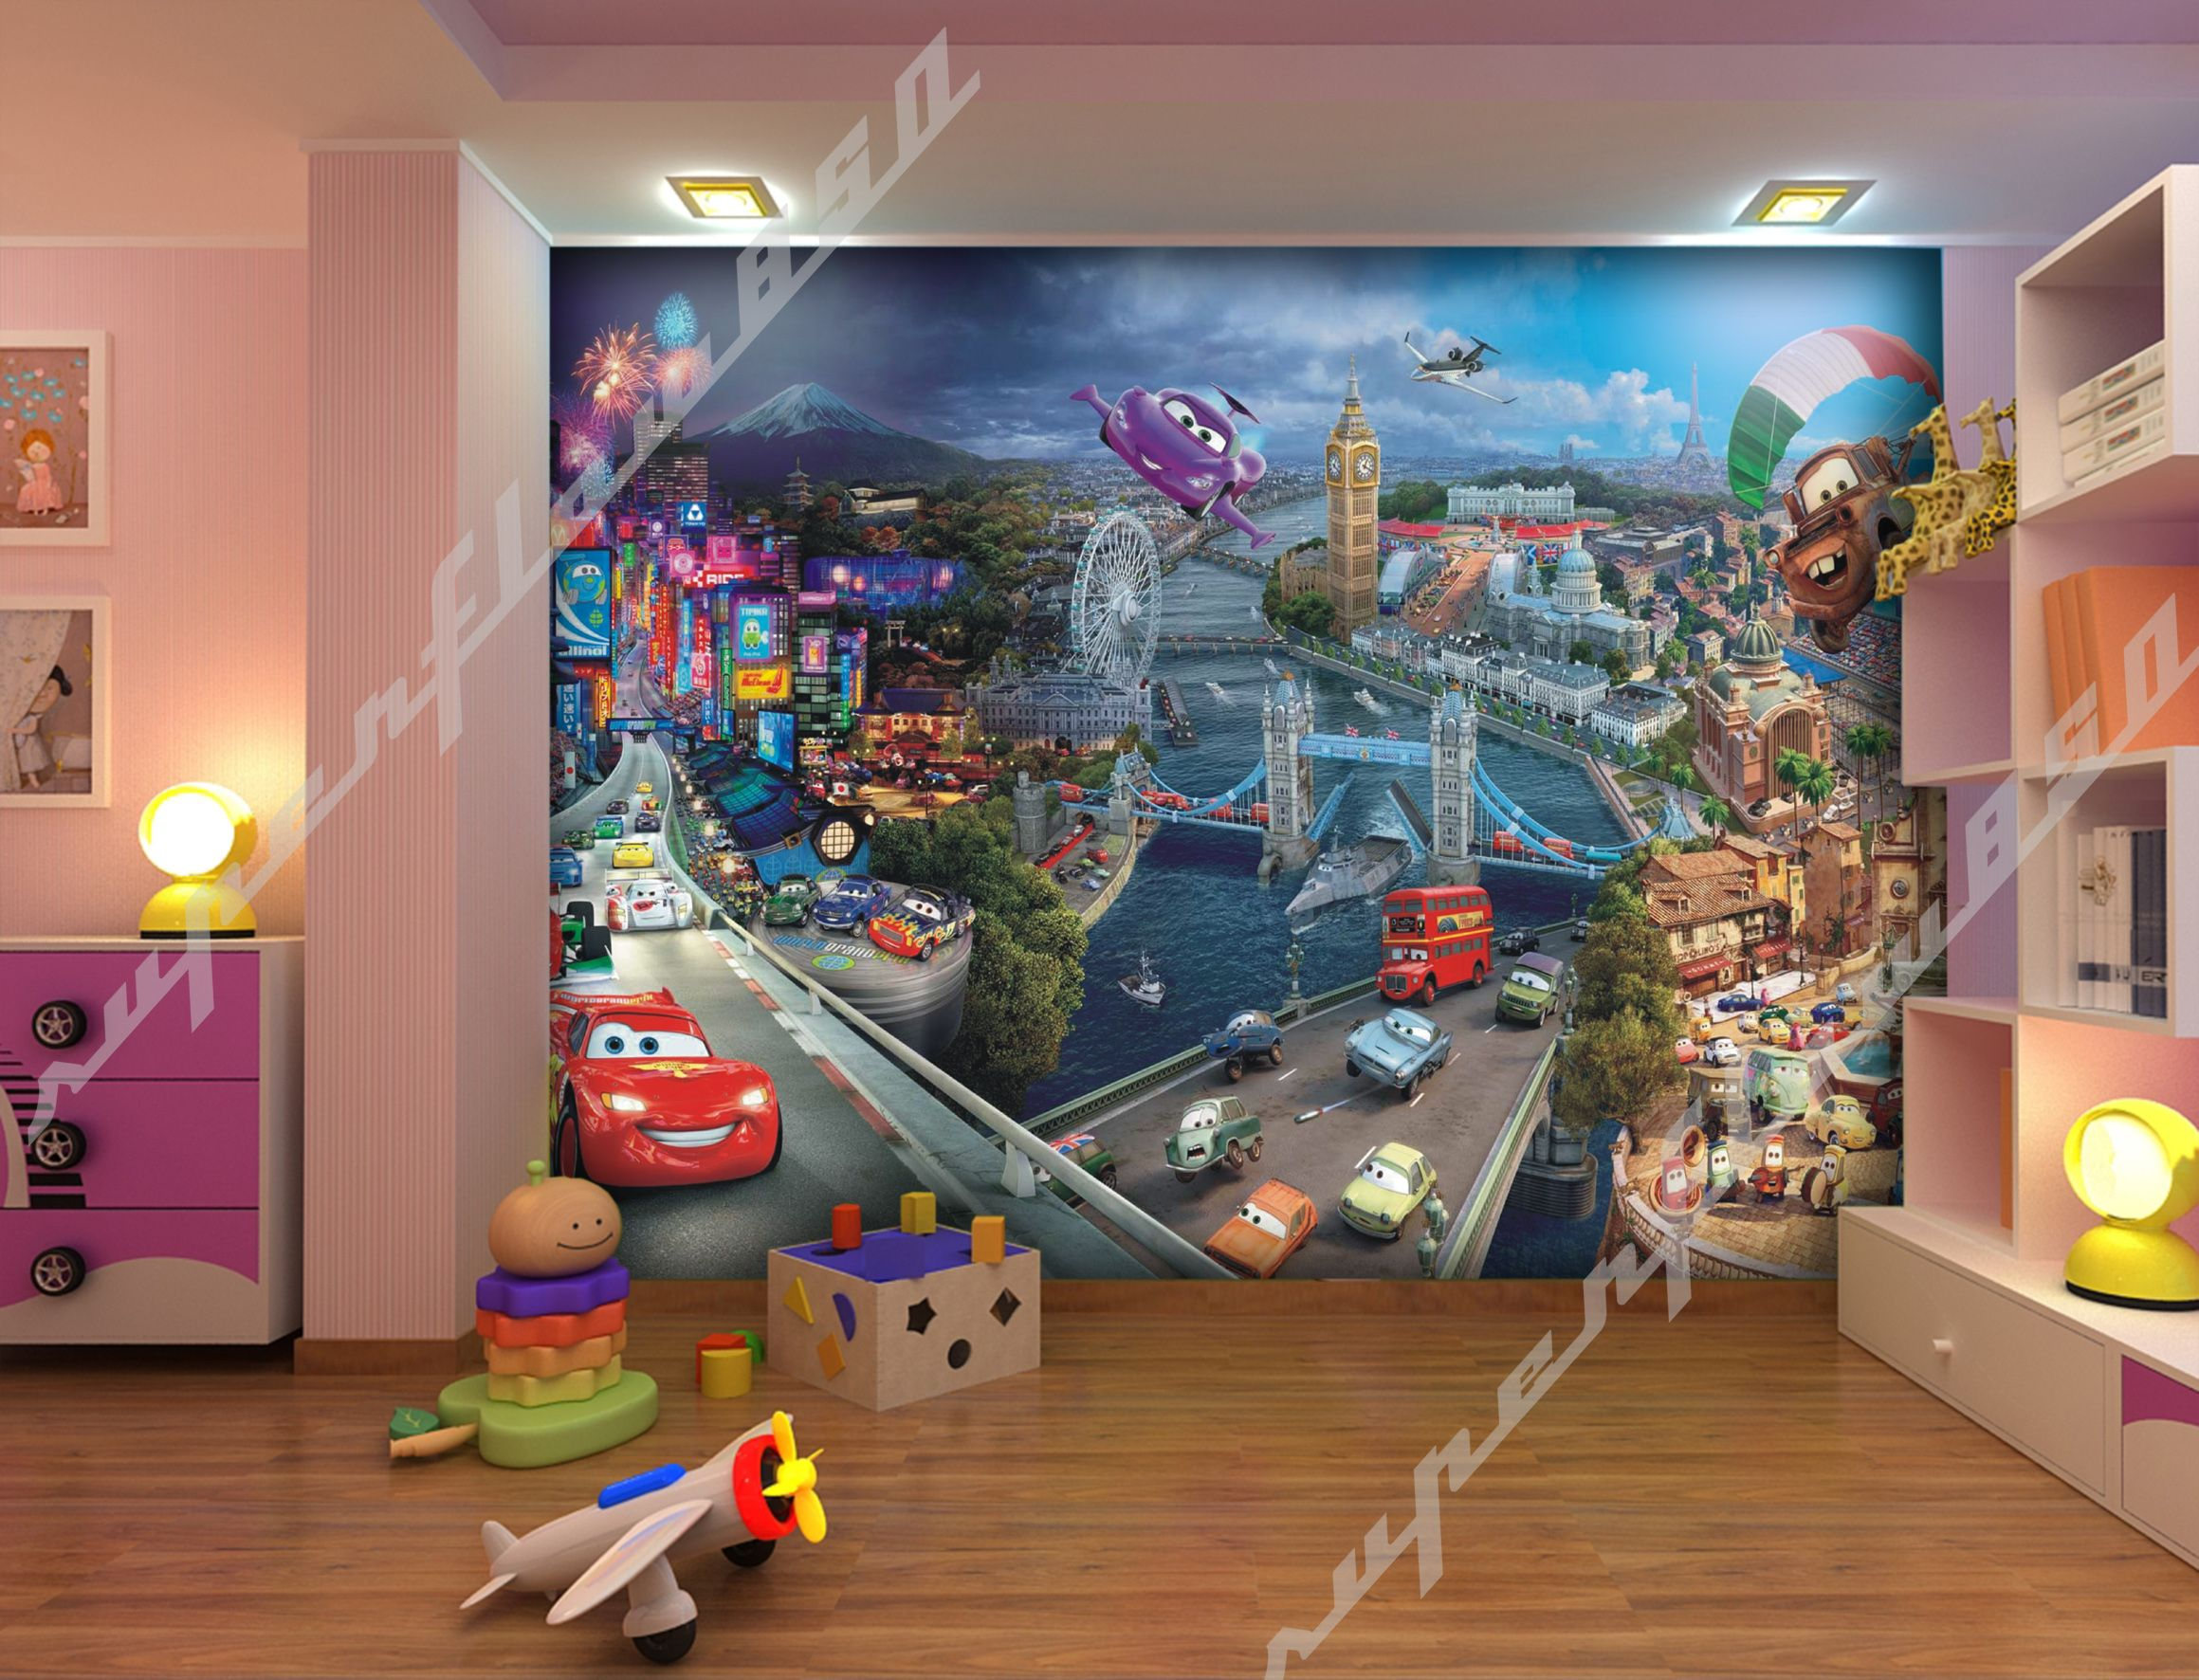 Cars world disney pixar photo wallpaper wall mural kids for Disney pixar cars wall mural